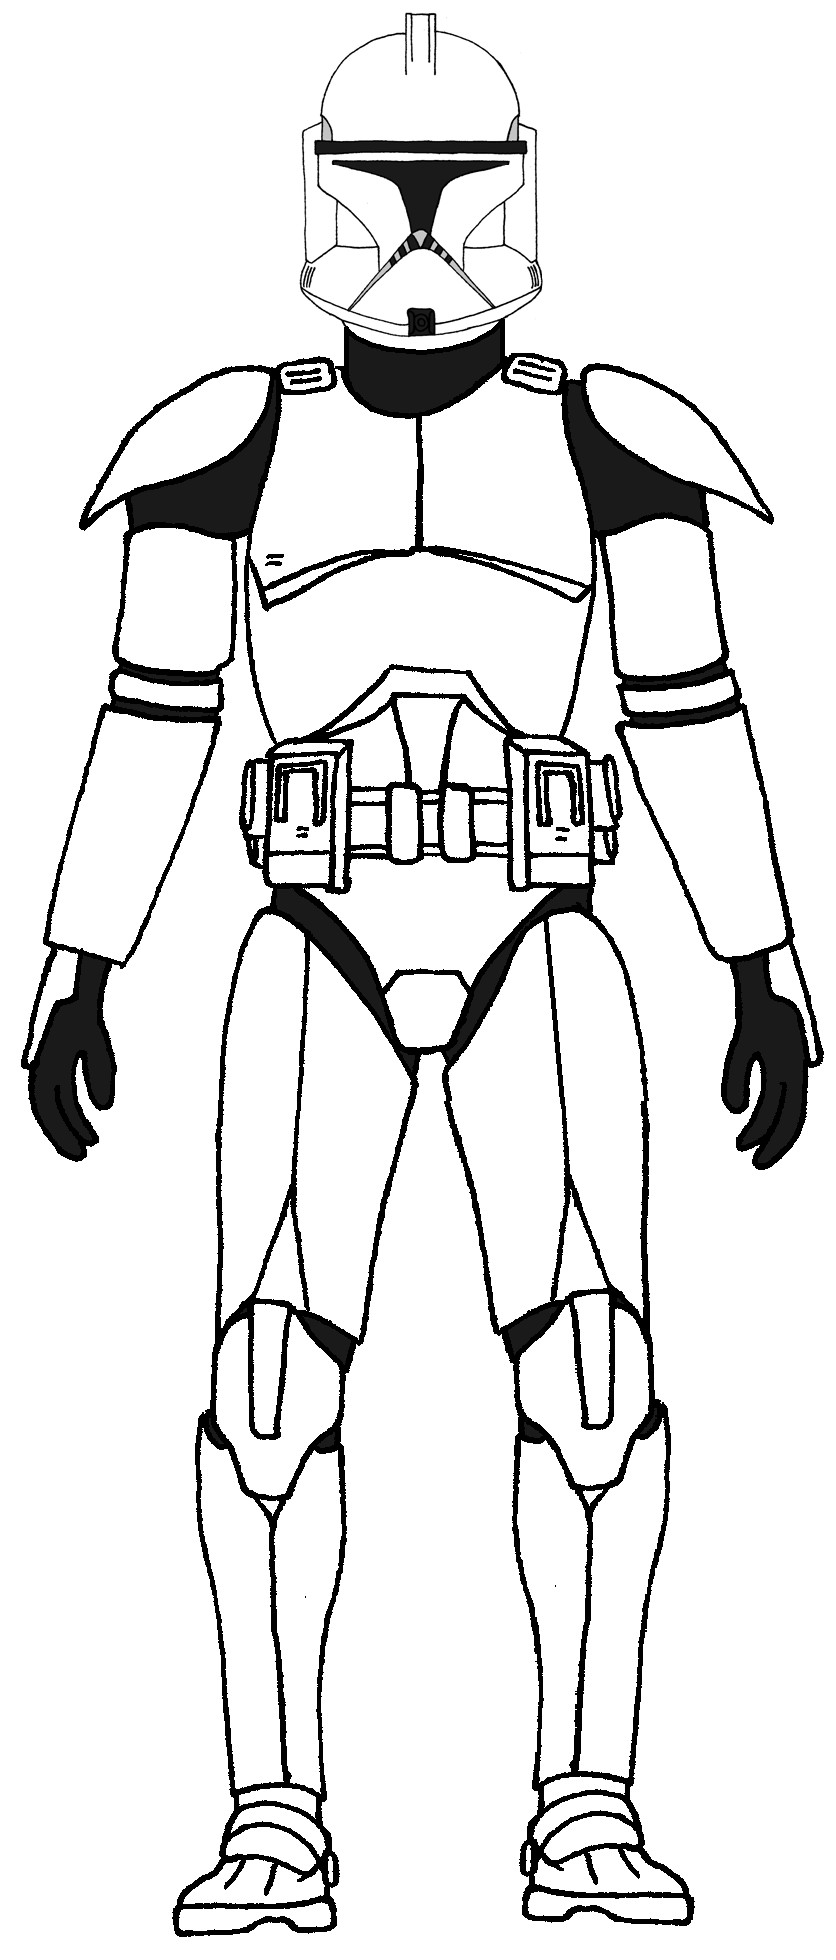 Clone Wars Coloring Pages  Star Wars Clone Coloring Pages